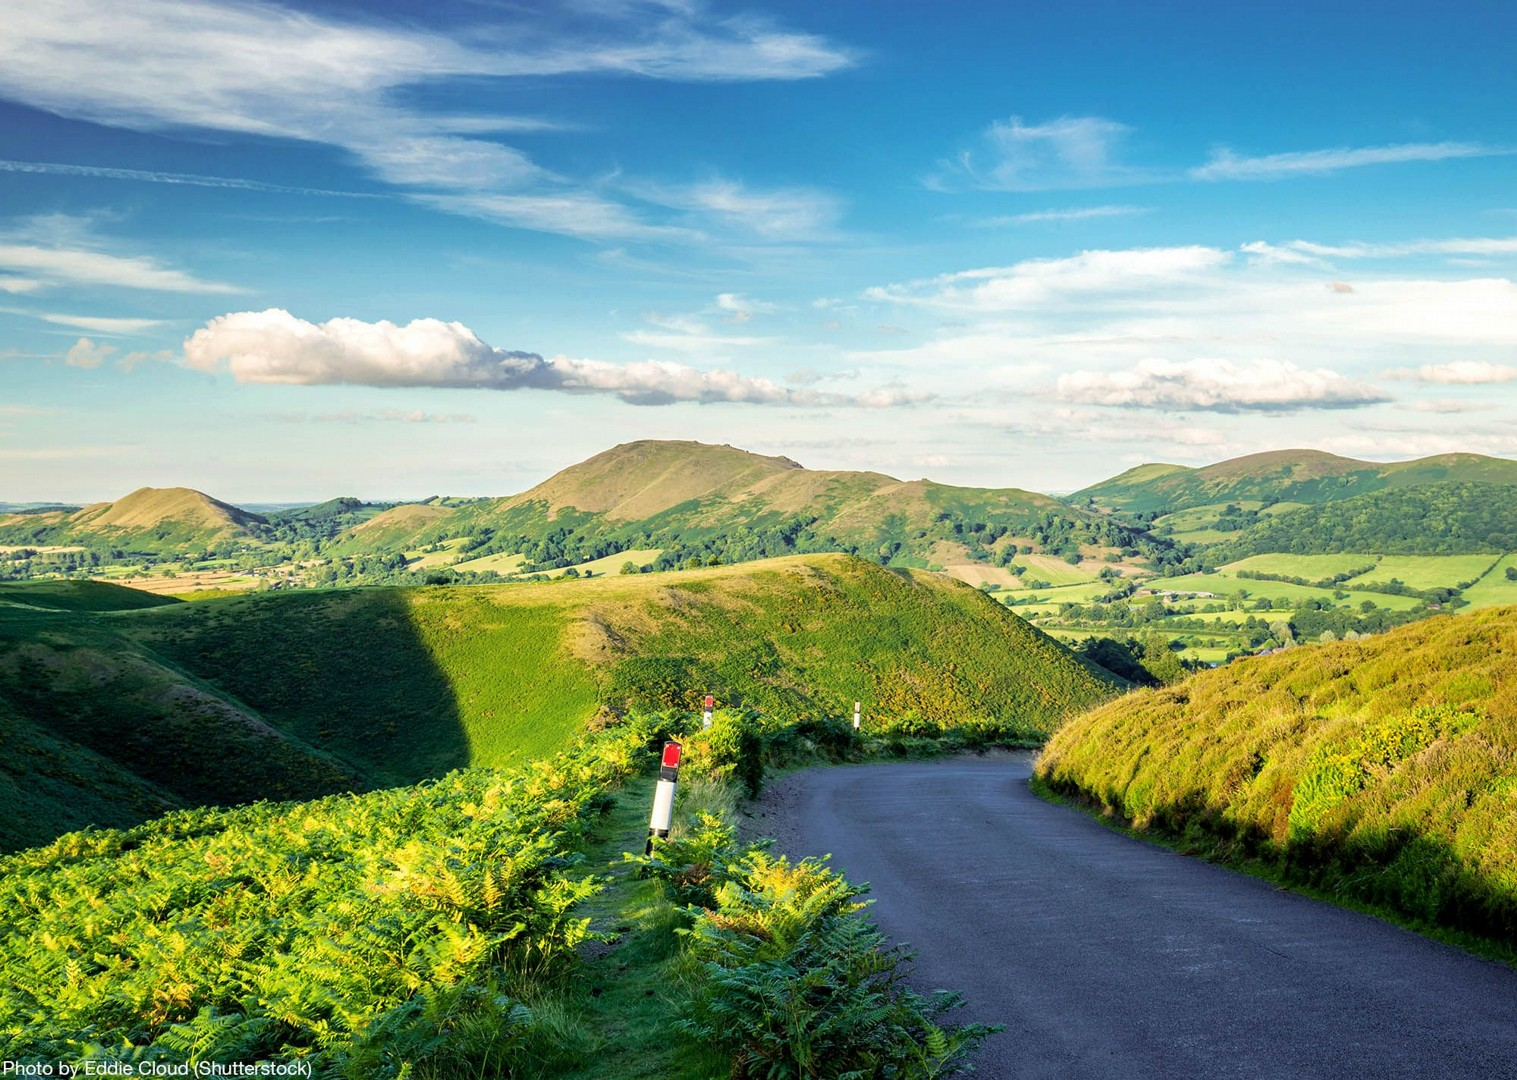 shutterstock_495328846546456.jpg - UK - South Shropshire - Guided Road Cycling Weekend - Road Cycling